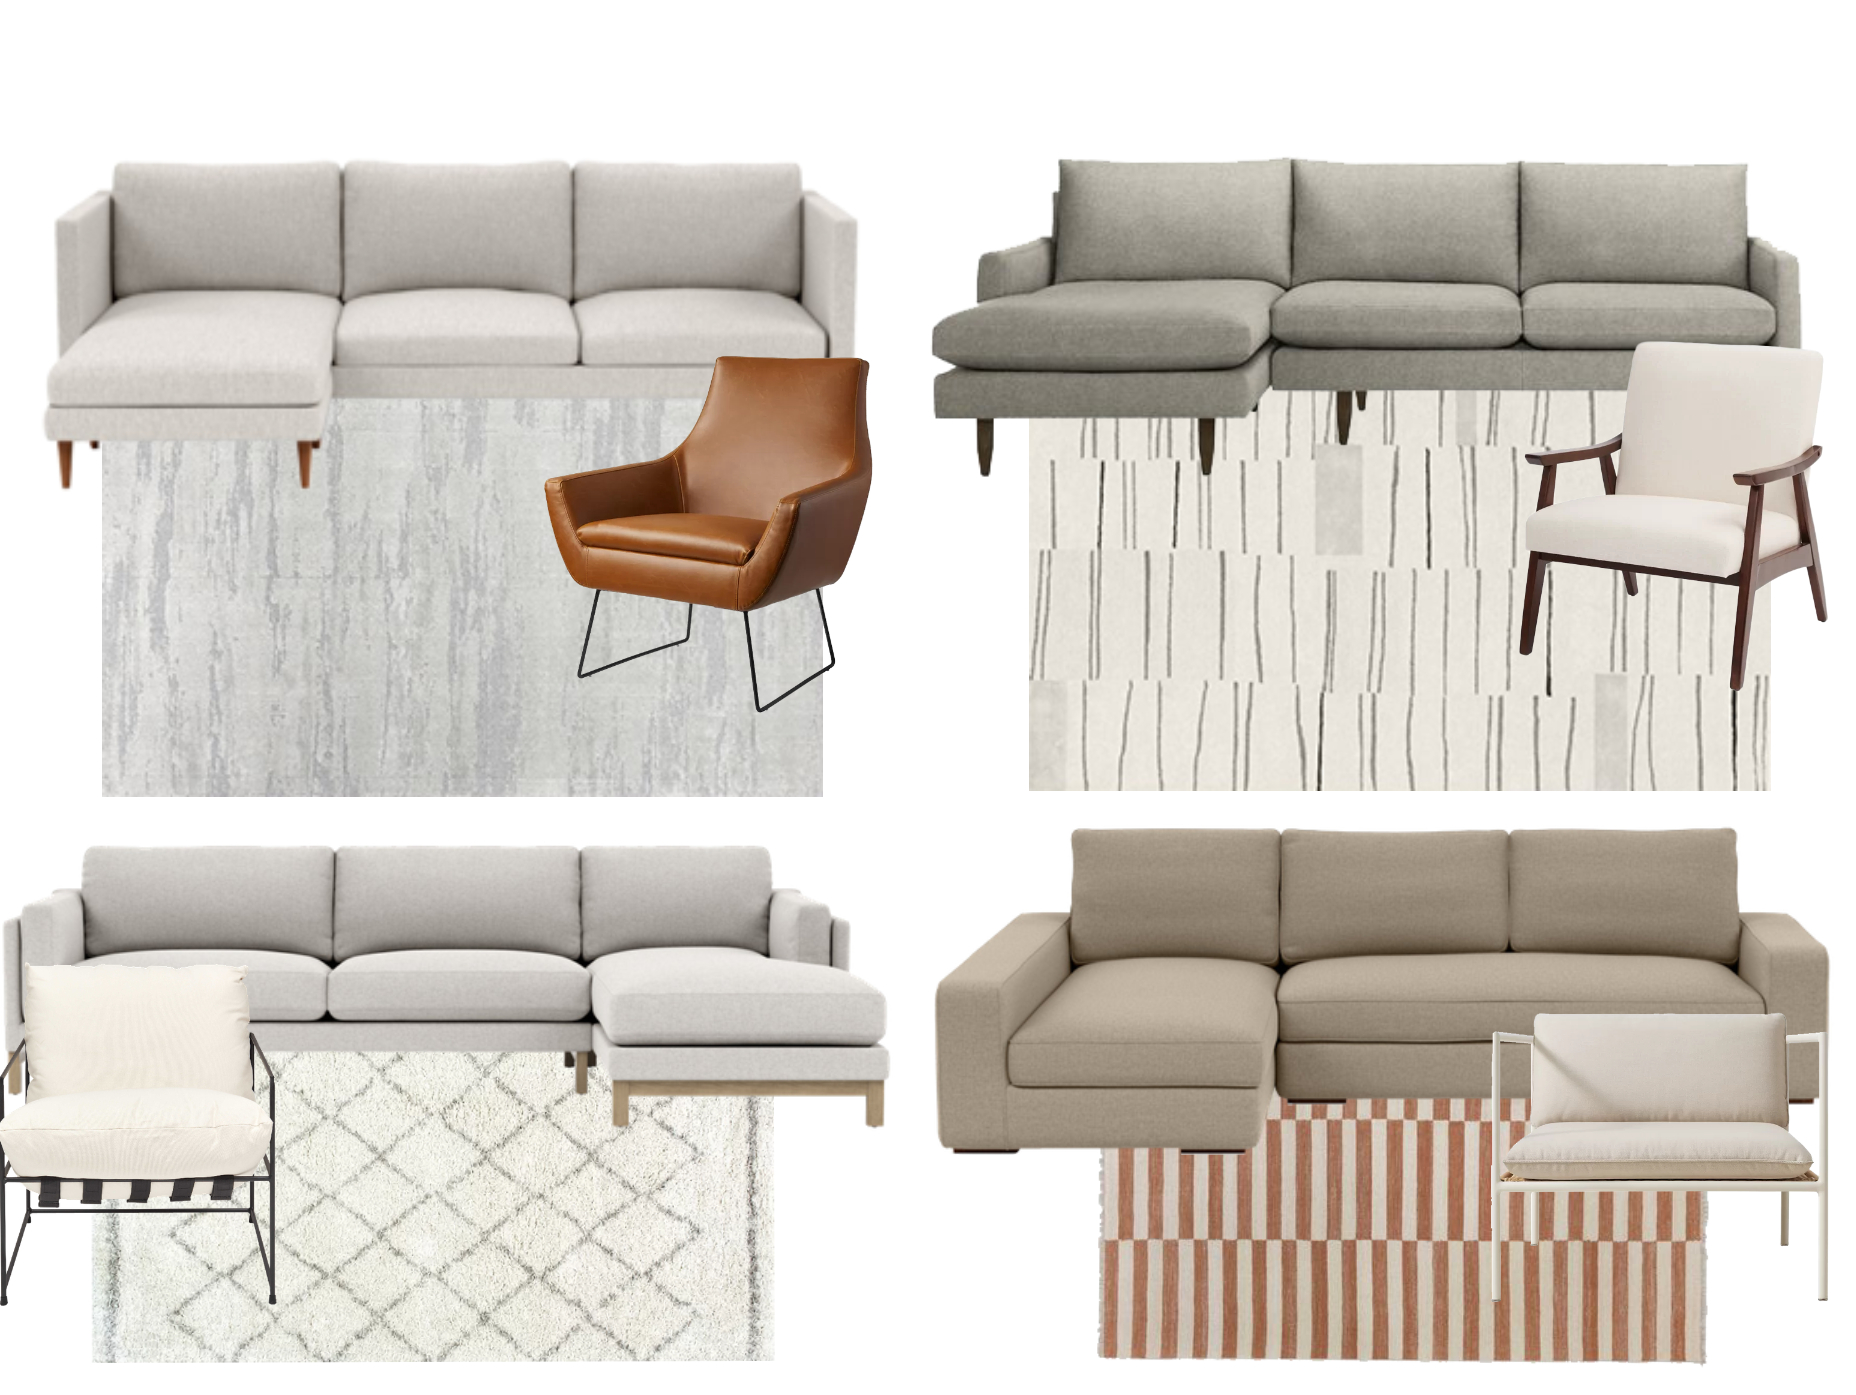 What Seating Should I Choose For My Modern Living Space Regarding Well Liked Roswell Polyester Blend Lounge Chairs (View 19 of 20)